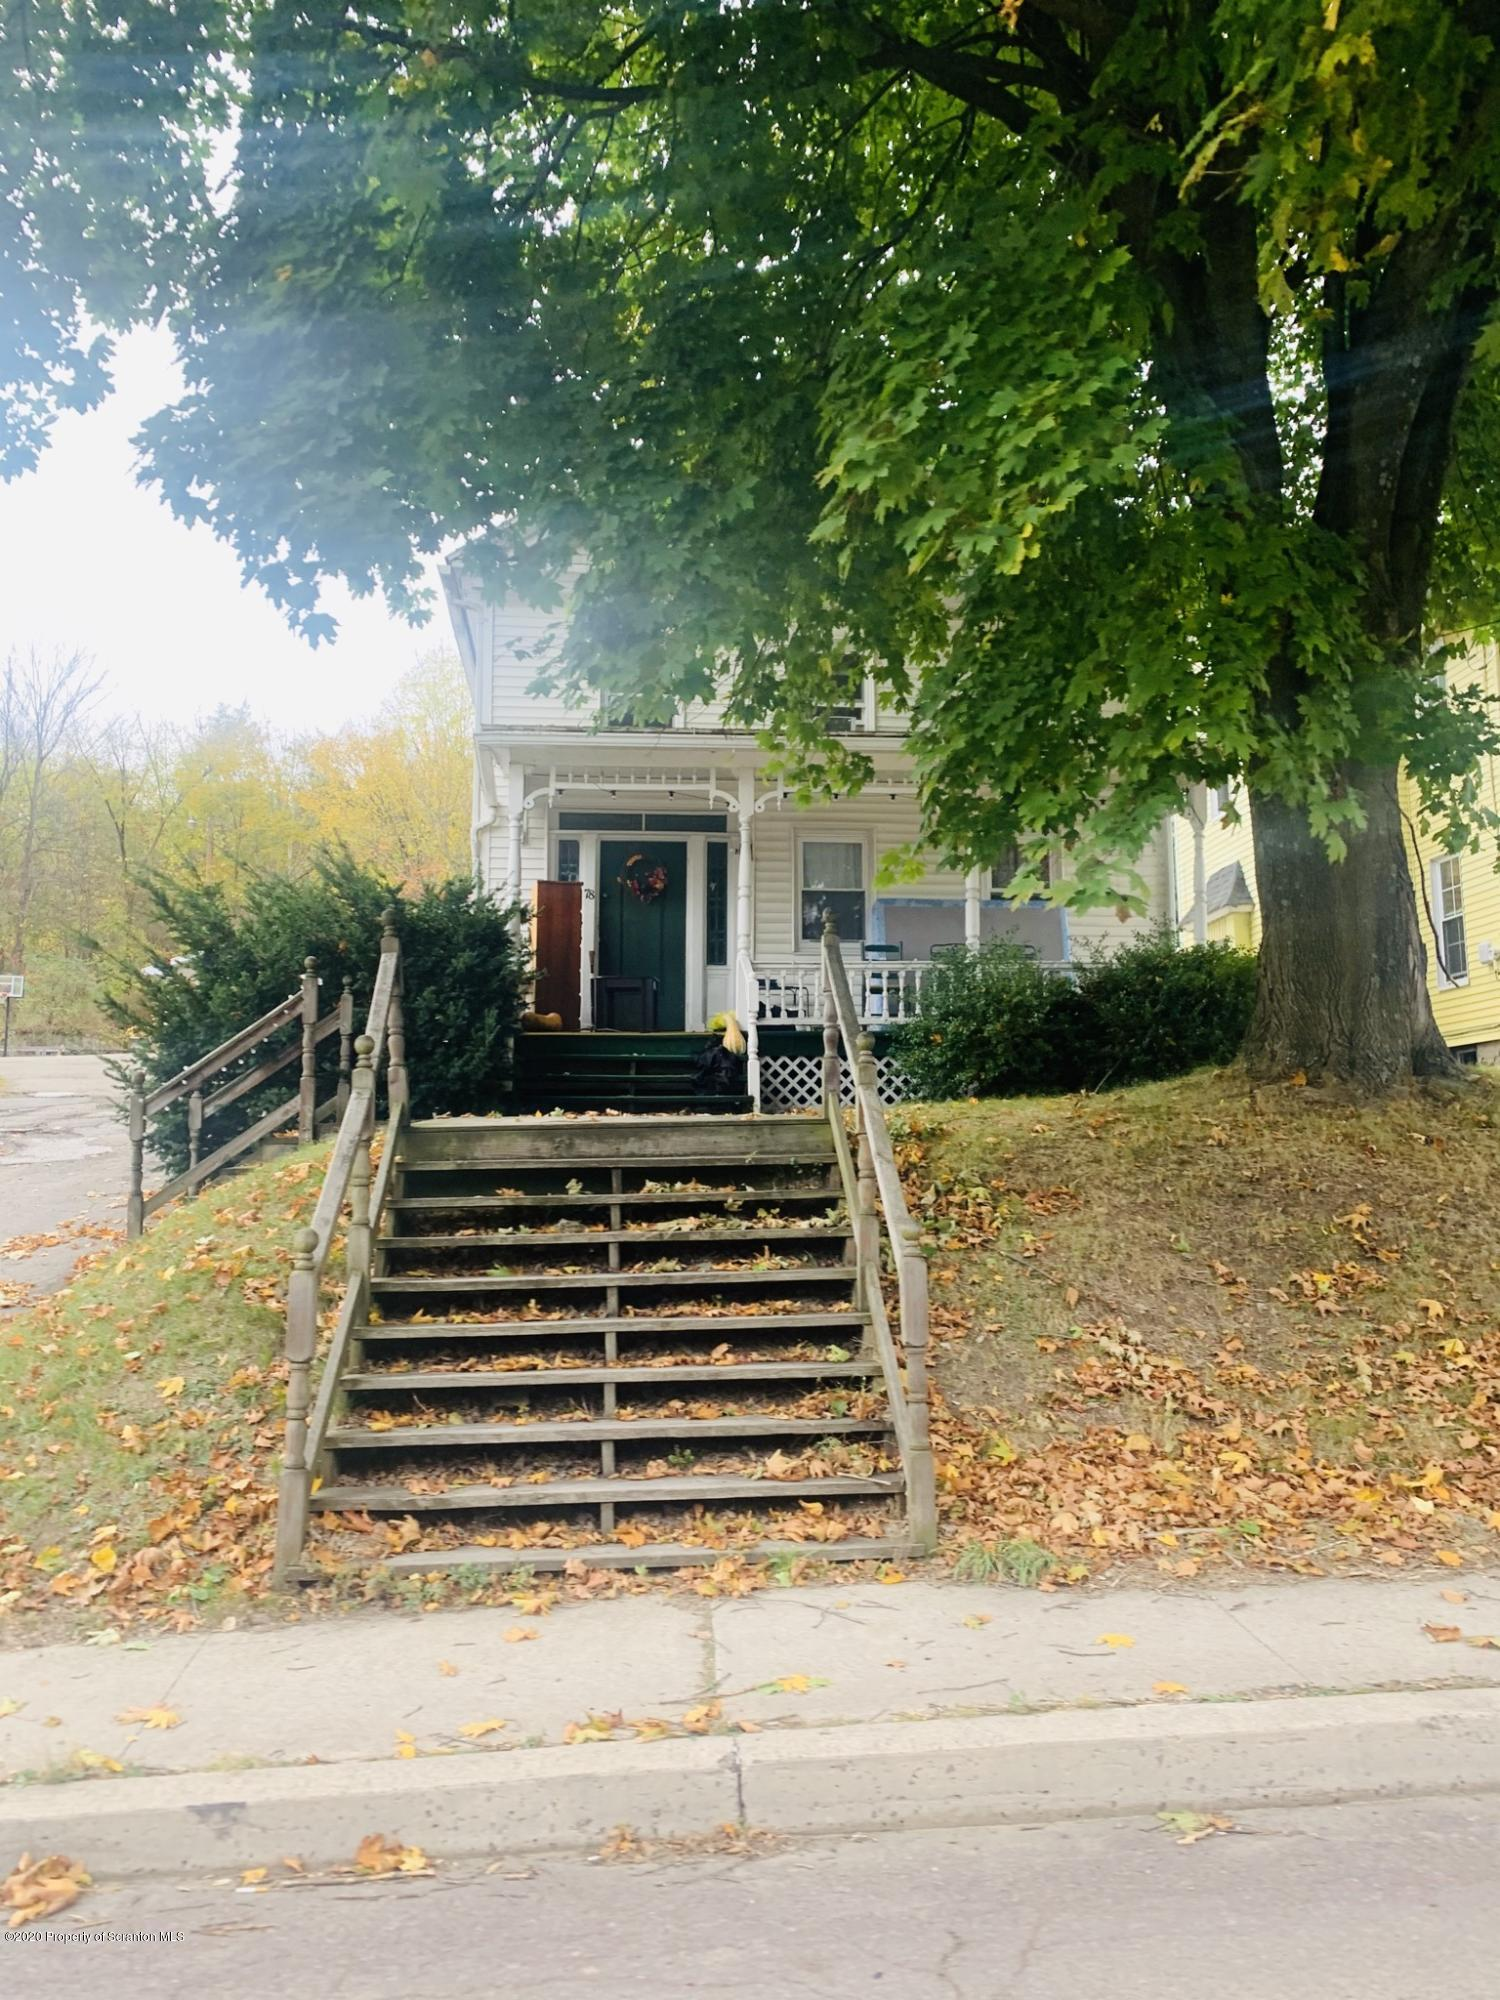 78 College Ave, Factoryville, Pennsylvania 18419, 4 Bedrooms Bedrooms, 7 Rooms Rooms,2 BathroomsBathrooms,Single Family,For Sale,College,20-4468